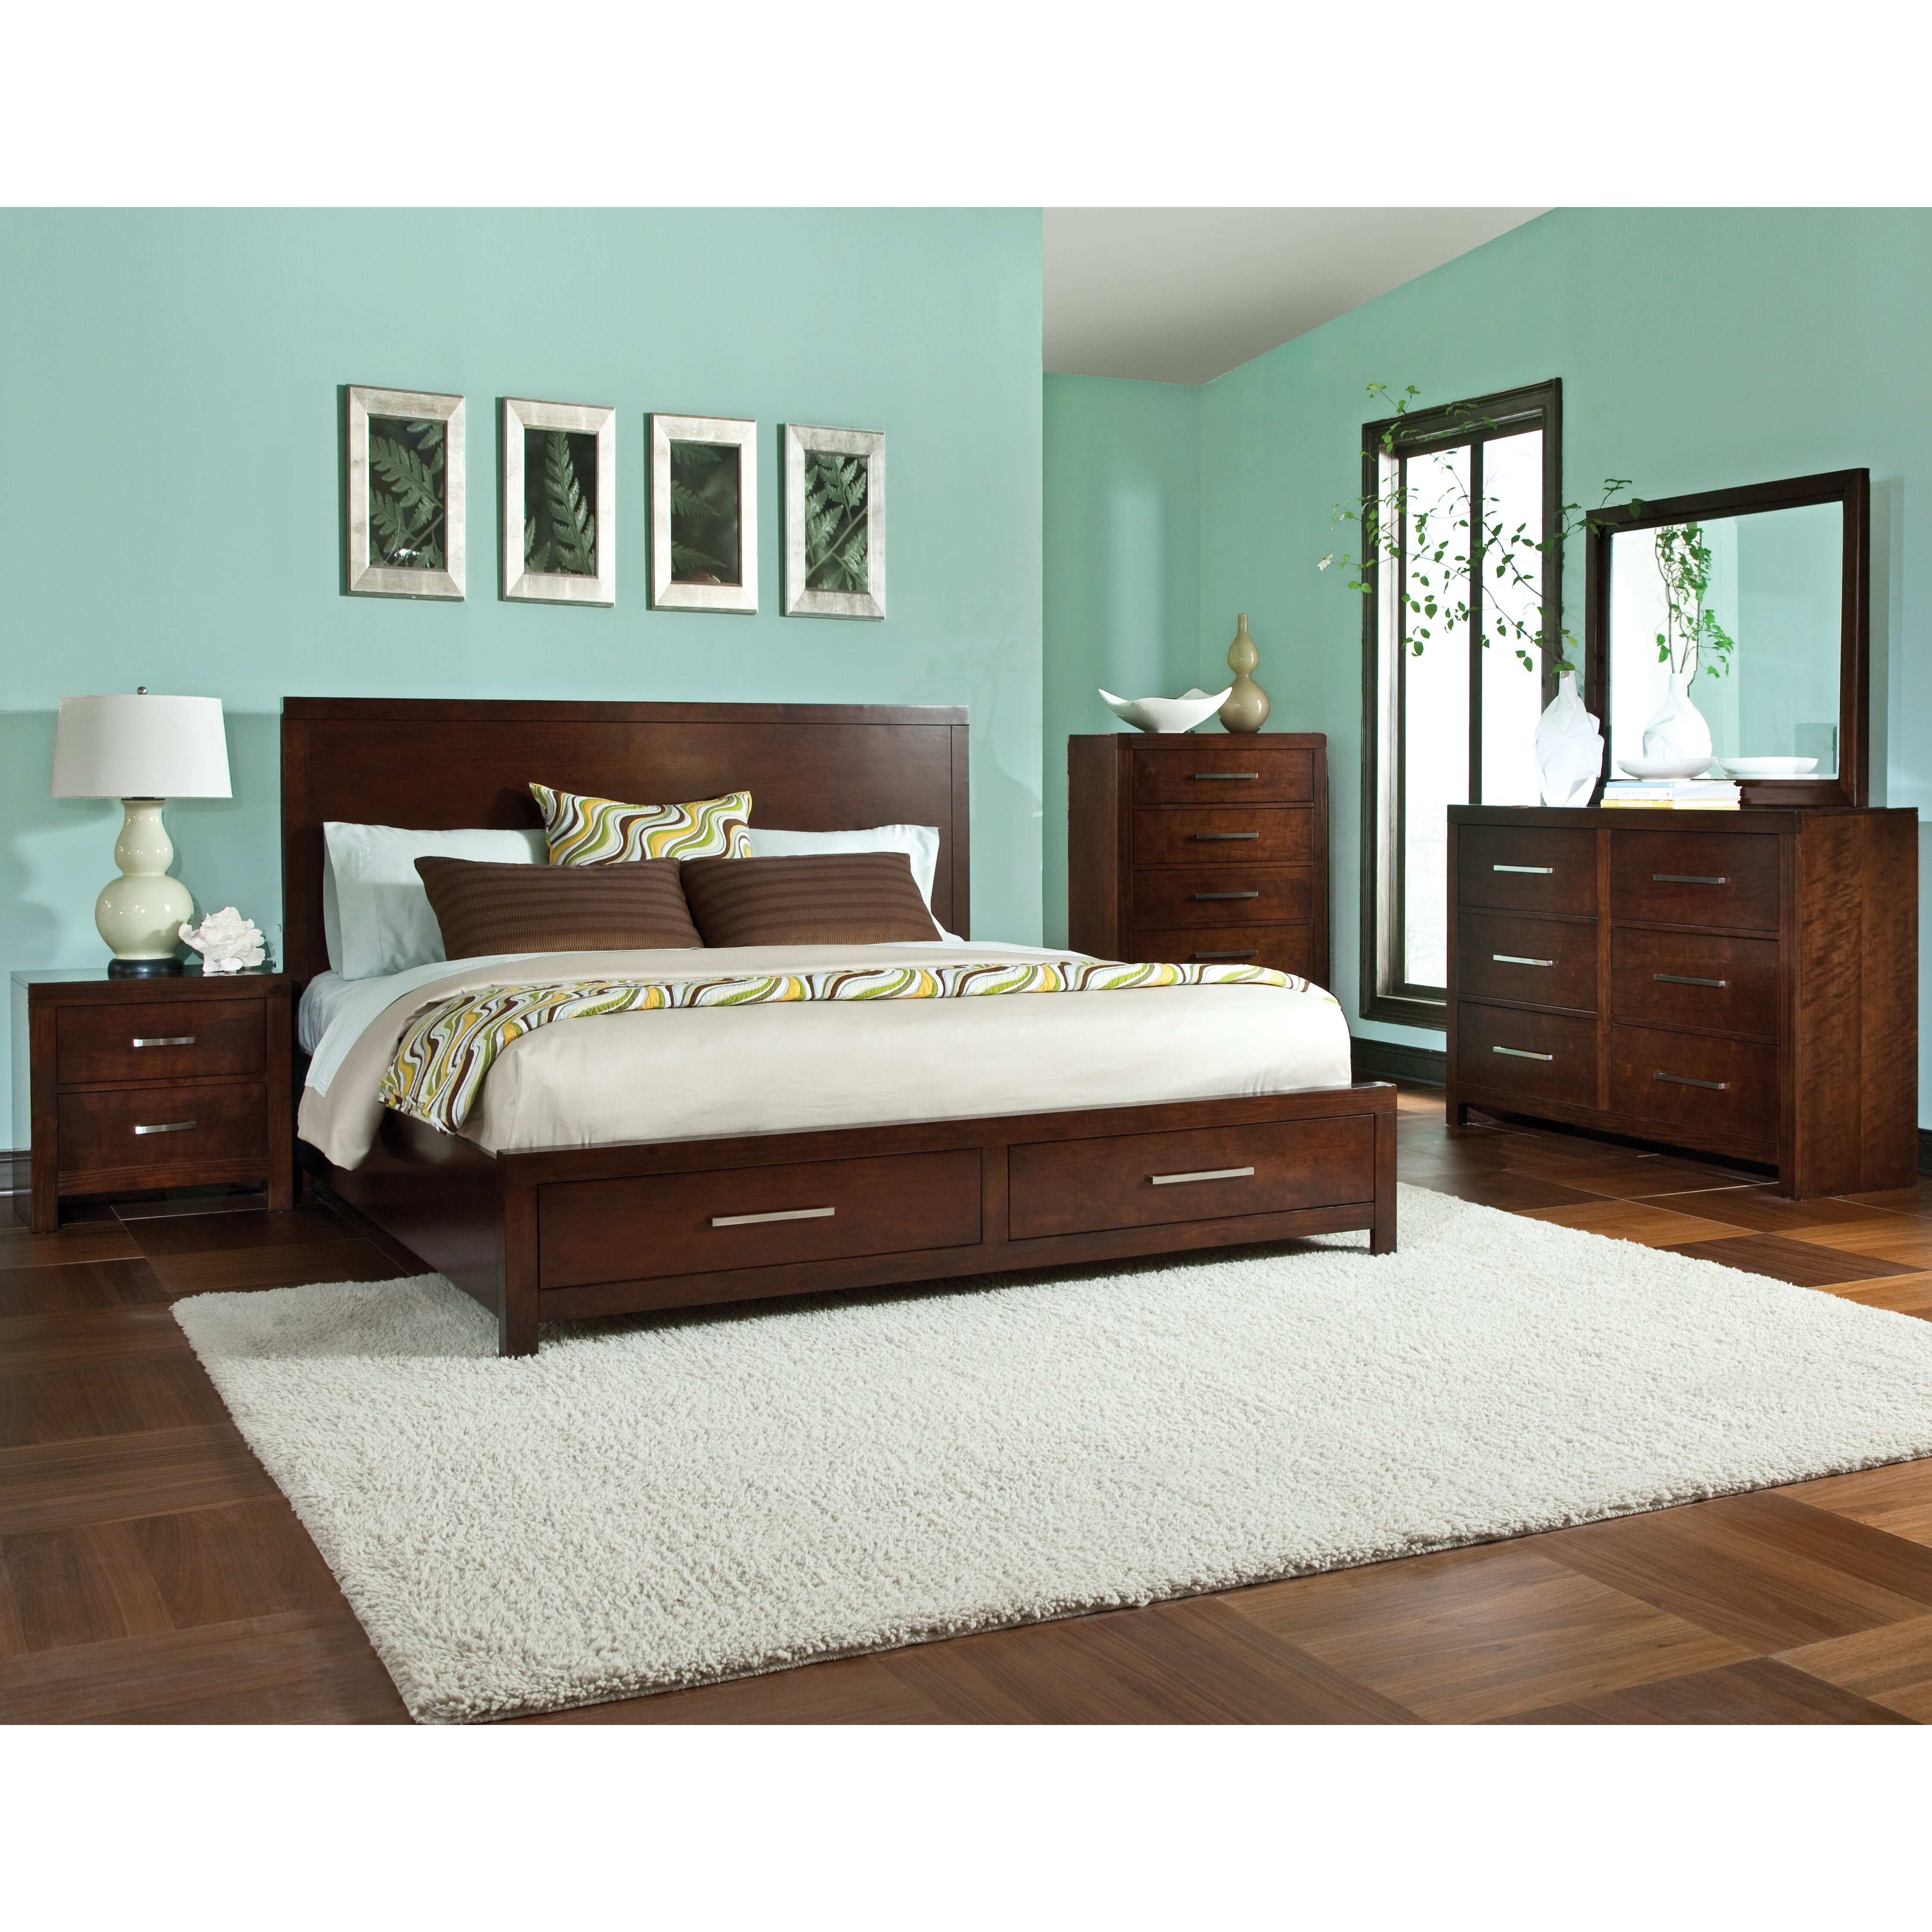 Standard Furniture Metro Platform Customizable Bedroom Set Reviews Wayfair